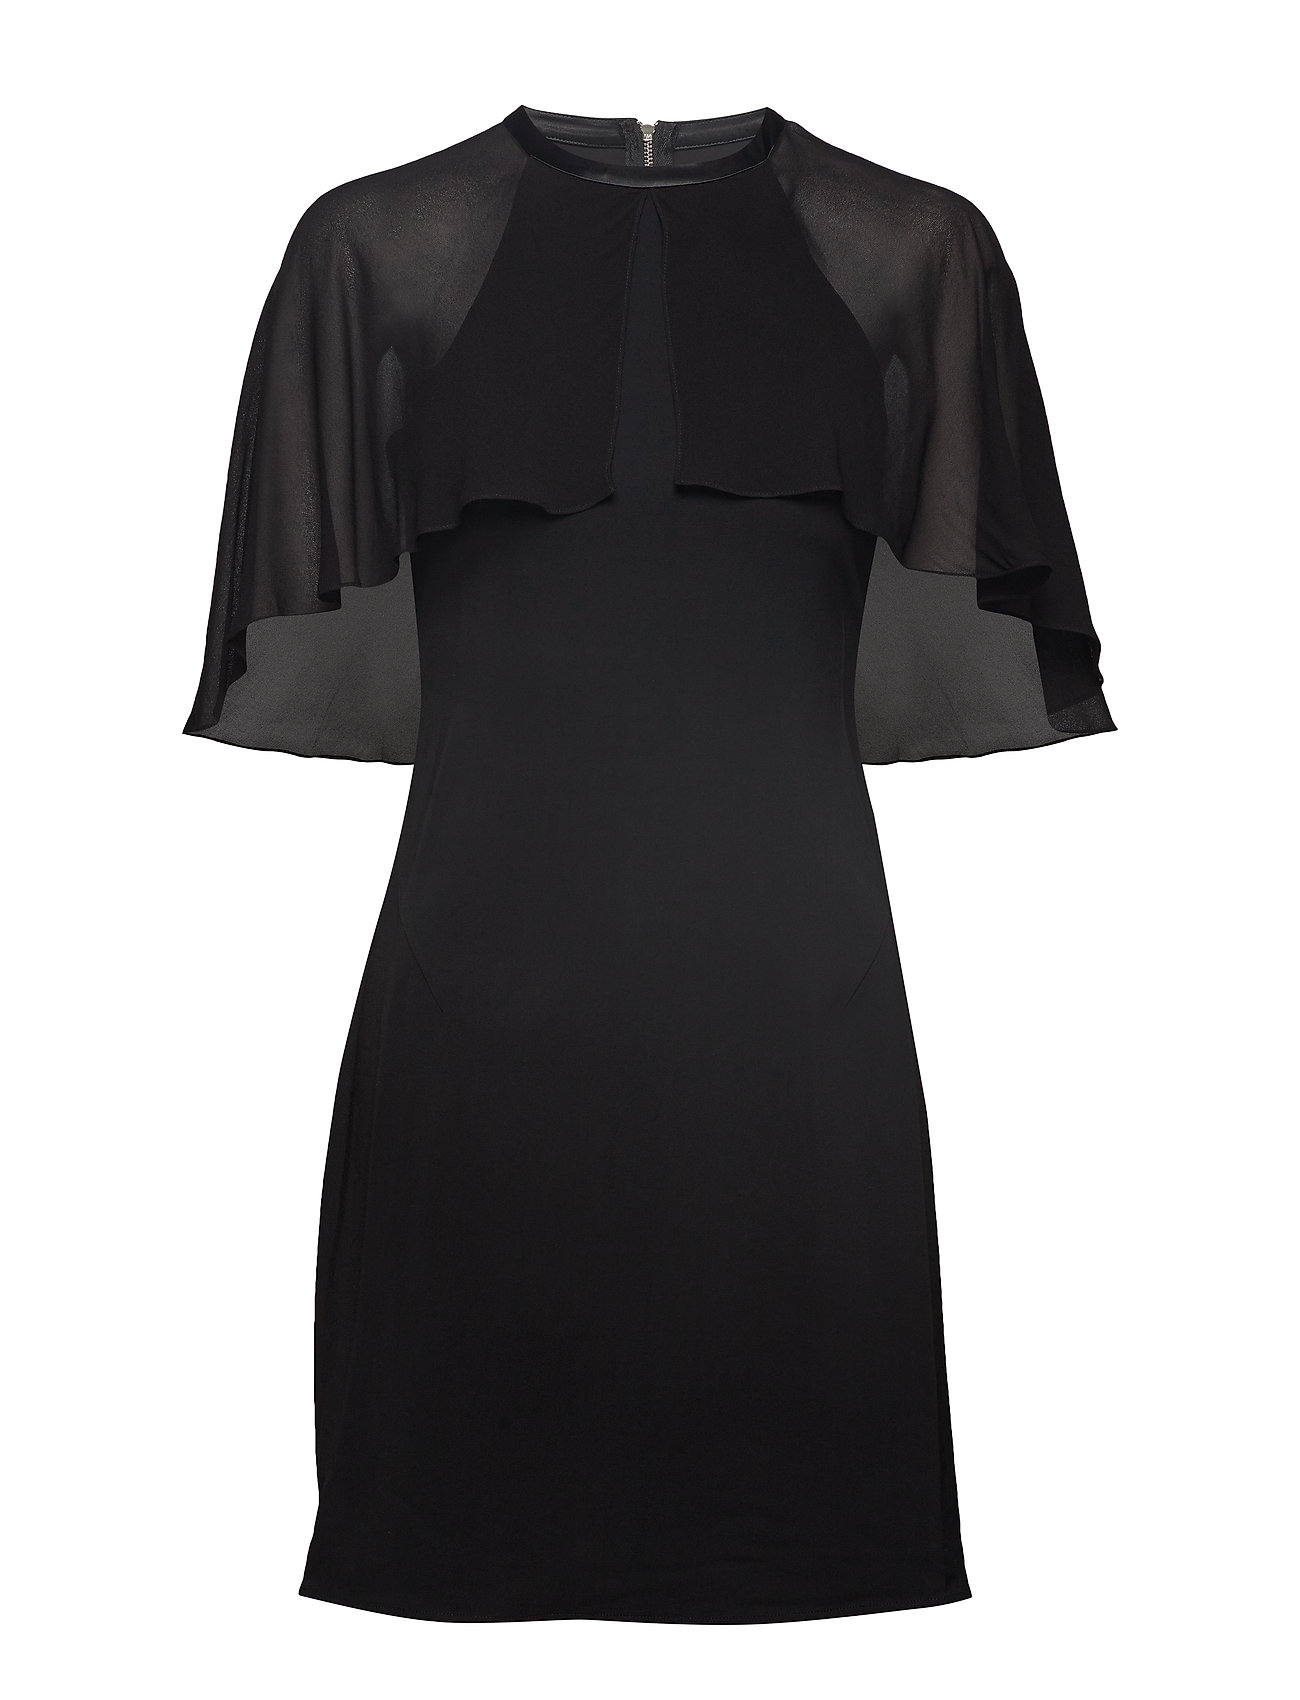 Karl Lagerfeld Dress W/ Cape Overlay - BLACK